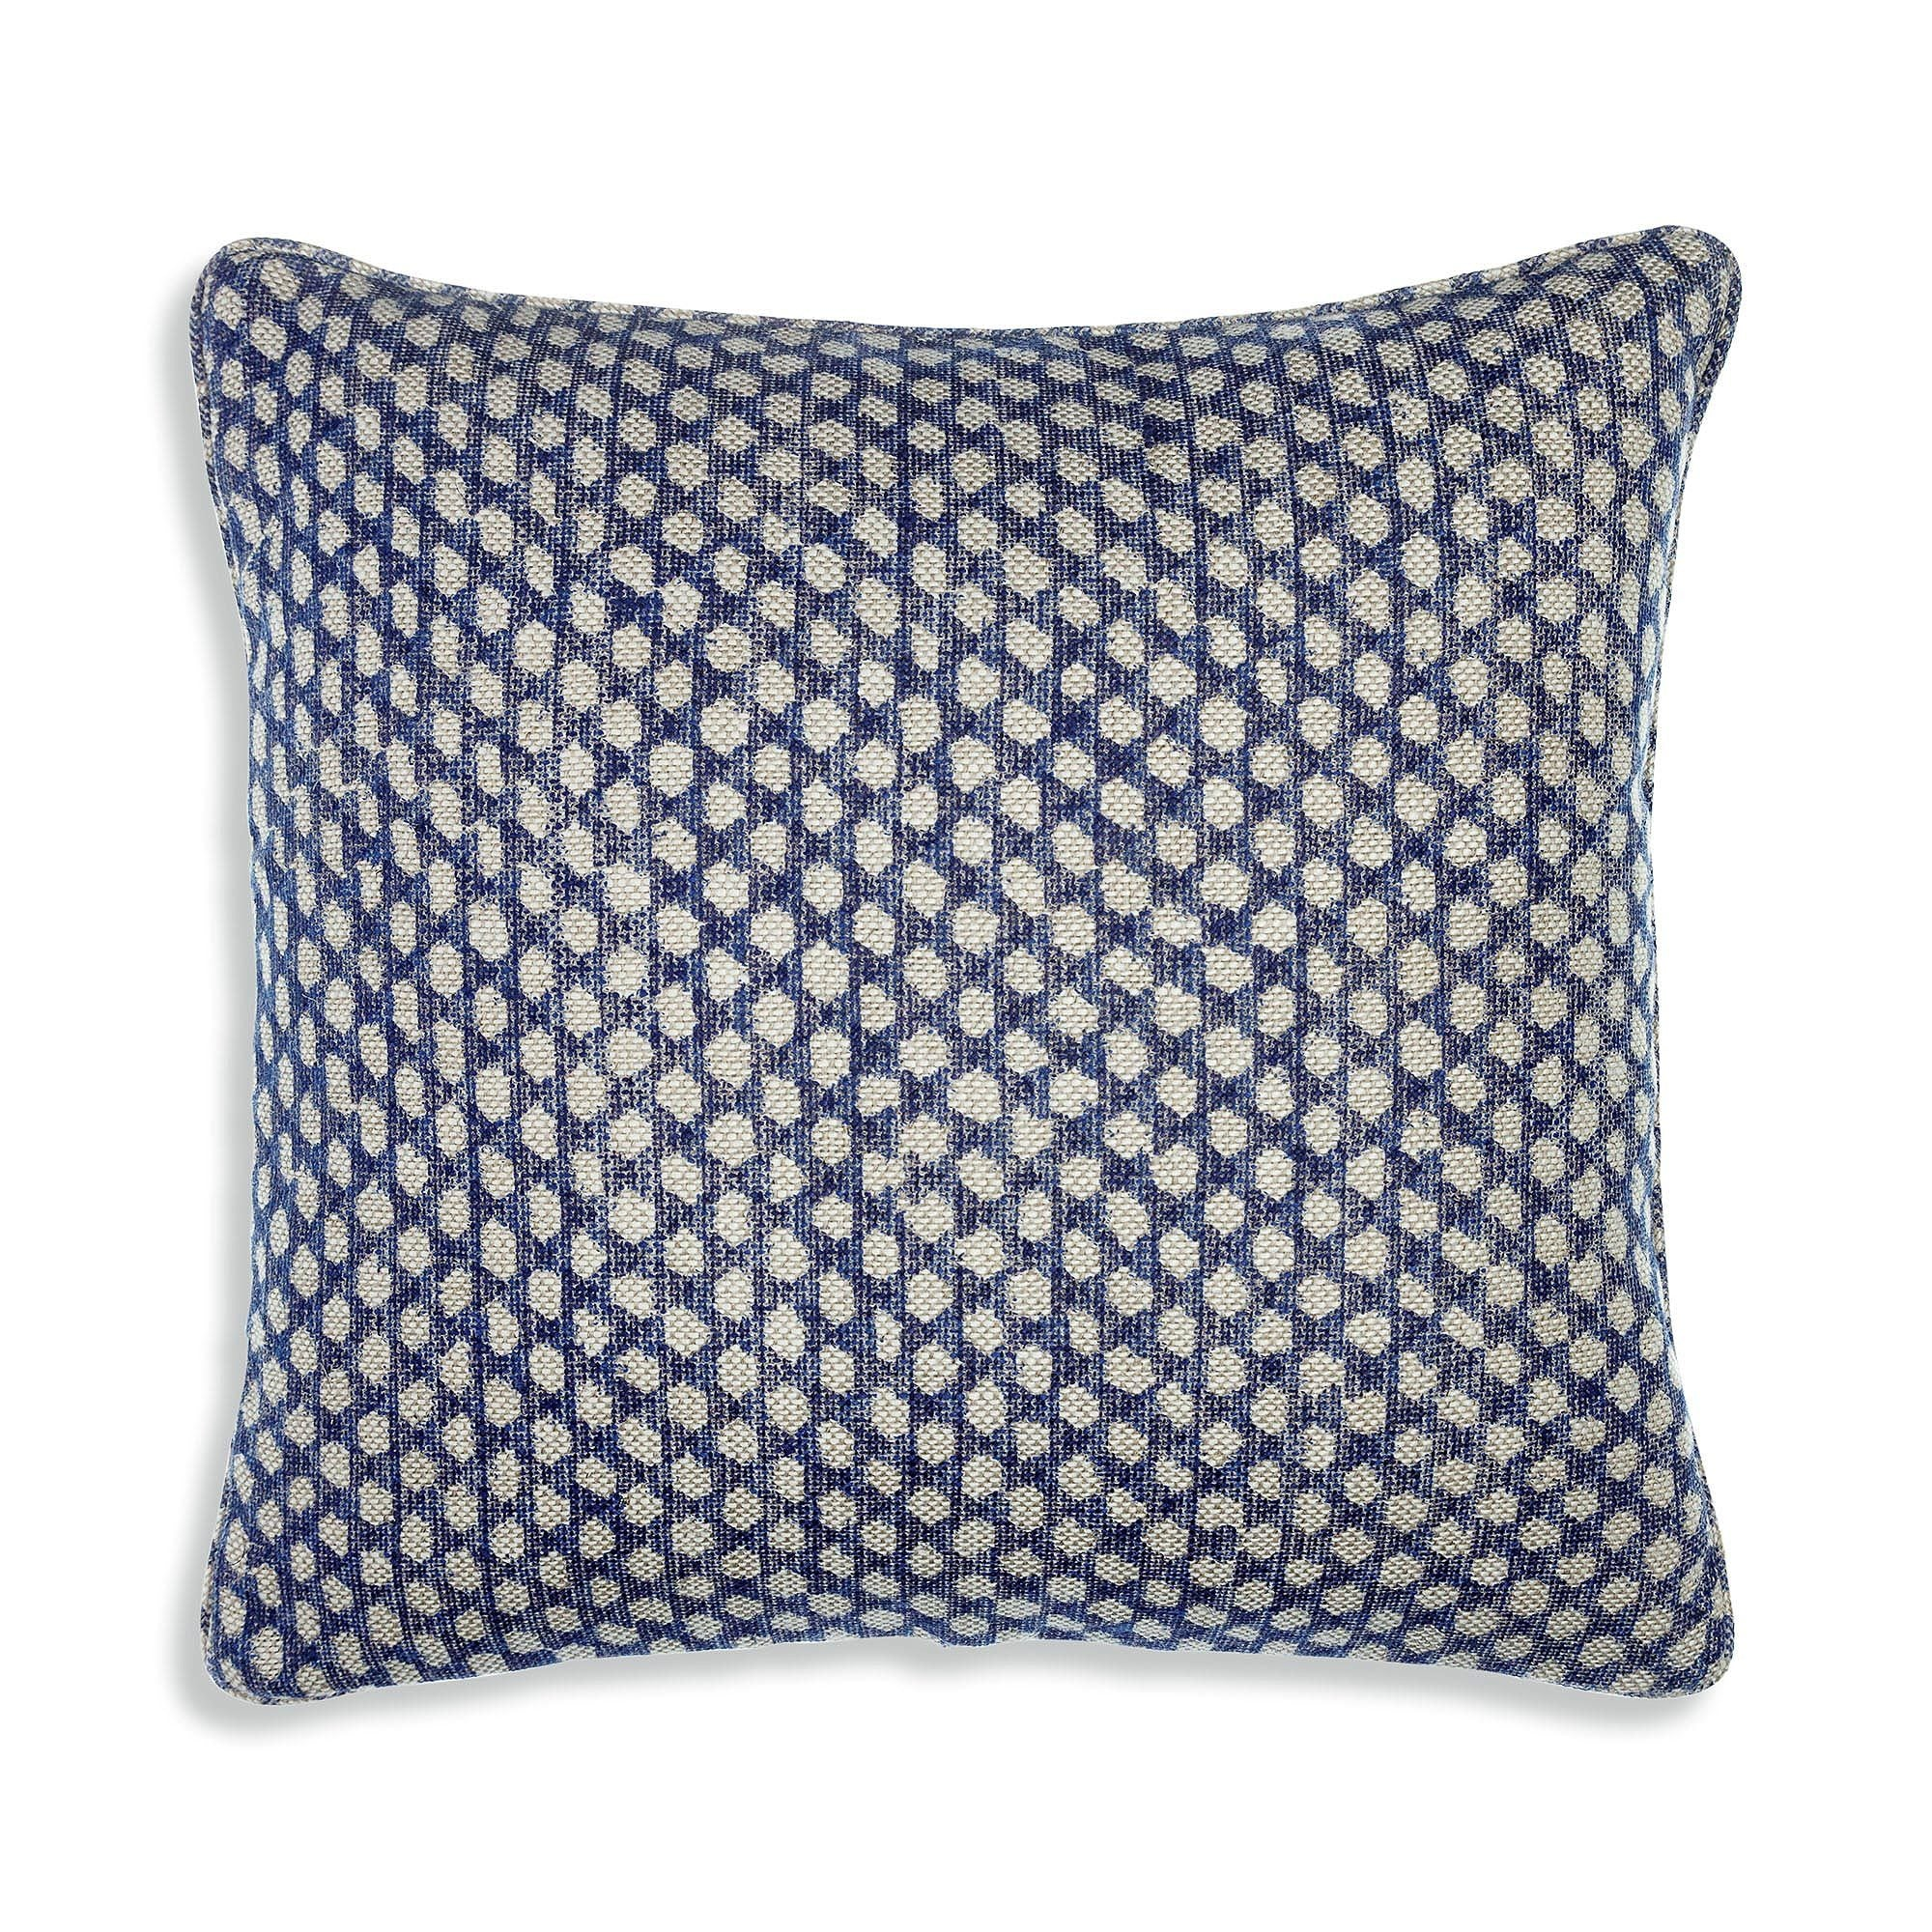 Fermoie Cushion in Blue Wicker